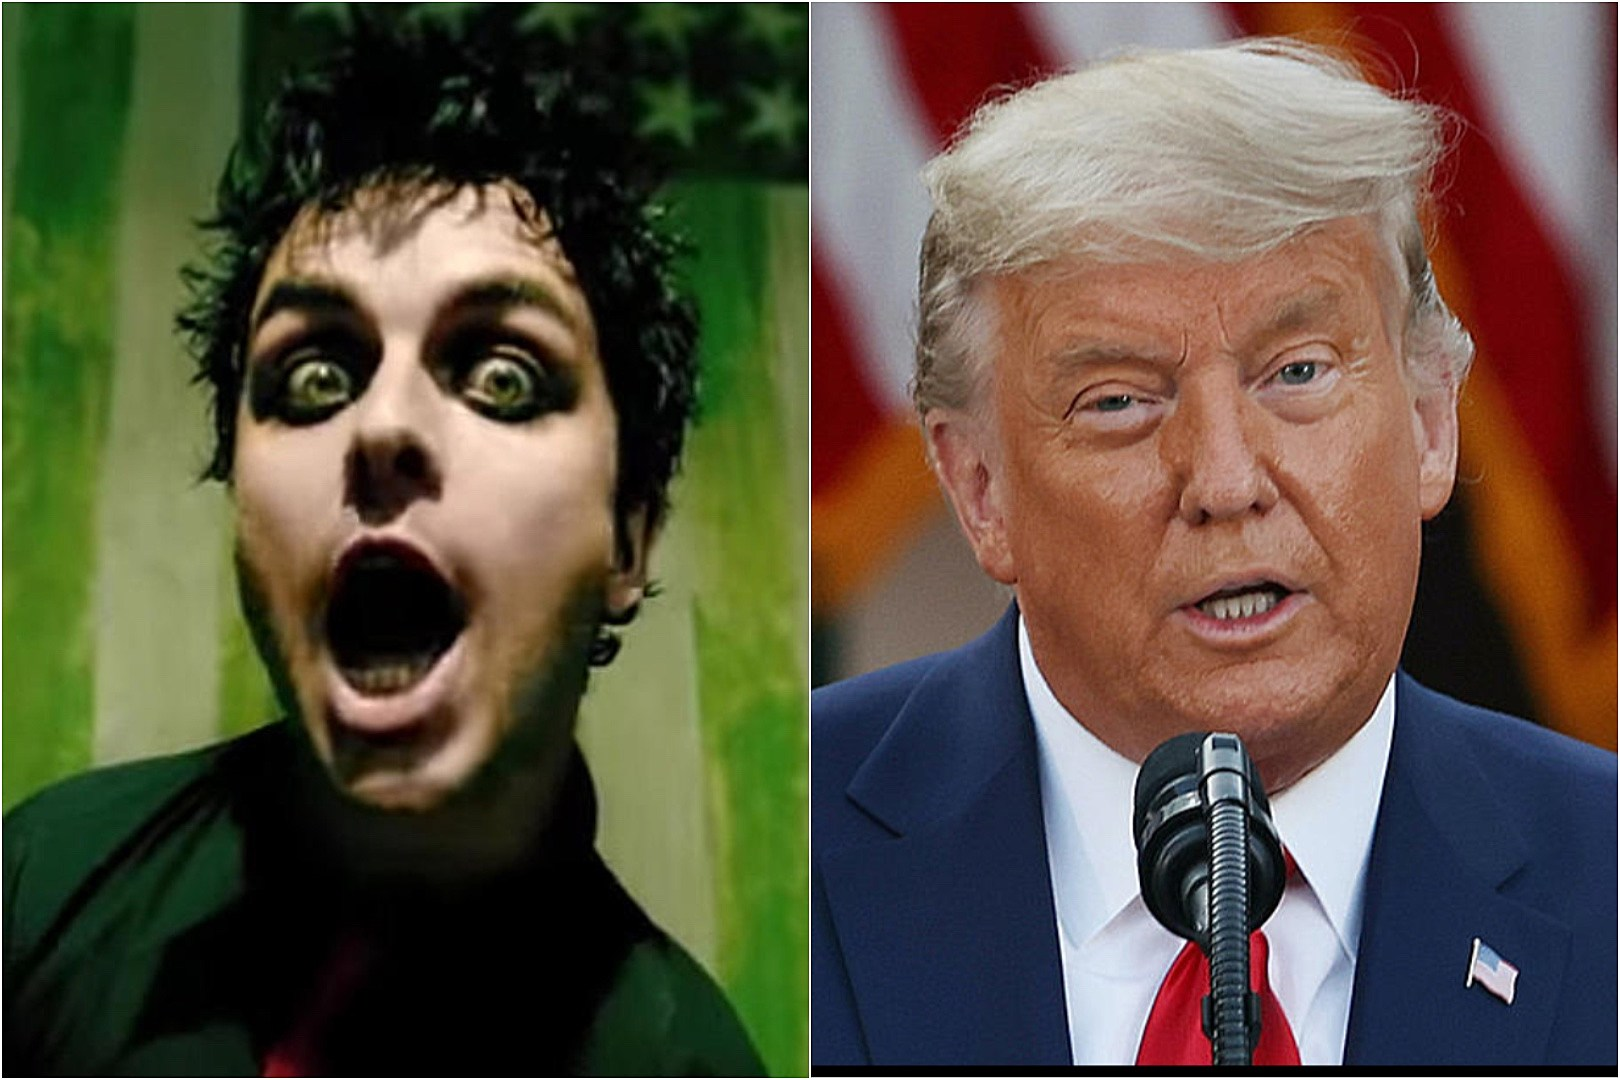 Trump Supporters Are Using Green Day's 'American Idiot' on TikTok